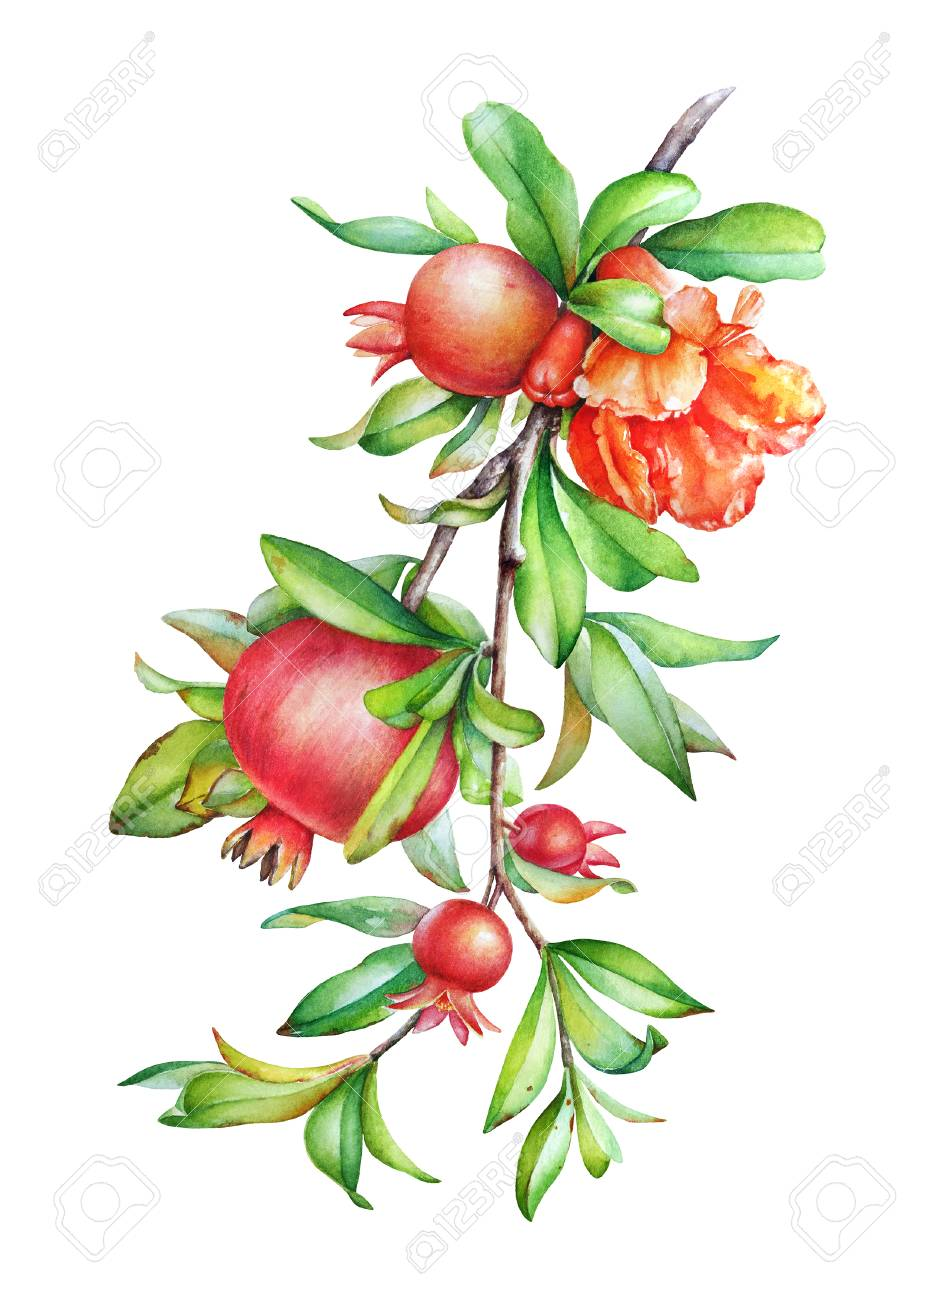 Watercolor Hand Drawn Illustration Of The Pomegranate Tree Branch Stock Photo Picture And Royalty Free Image Image 112595435